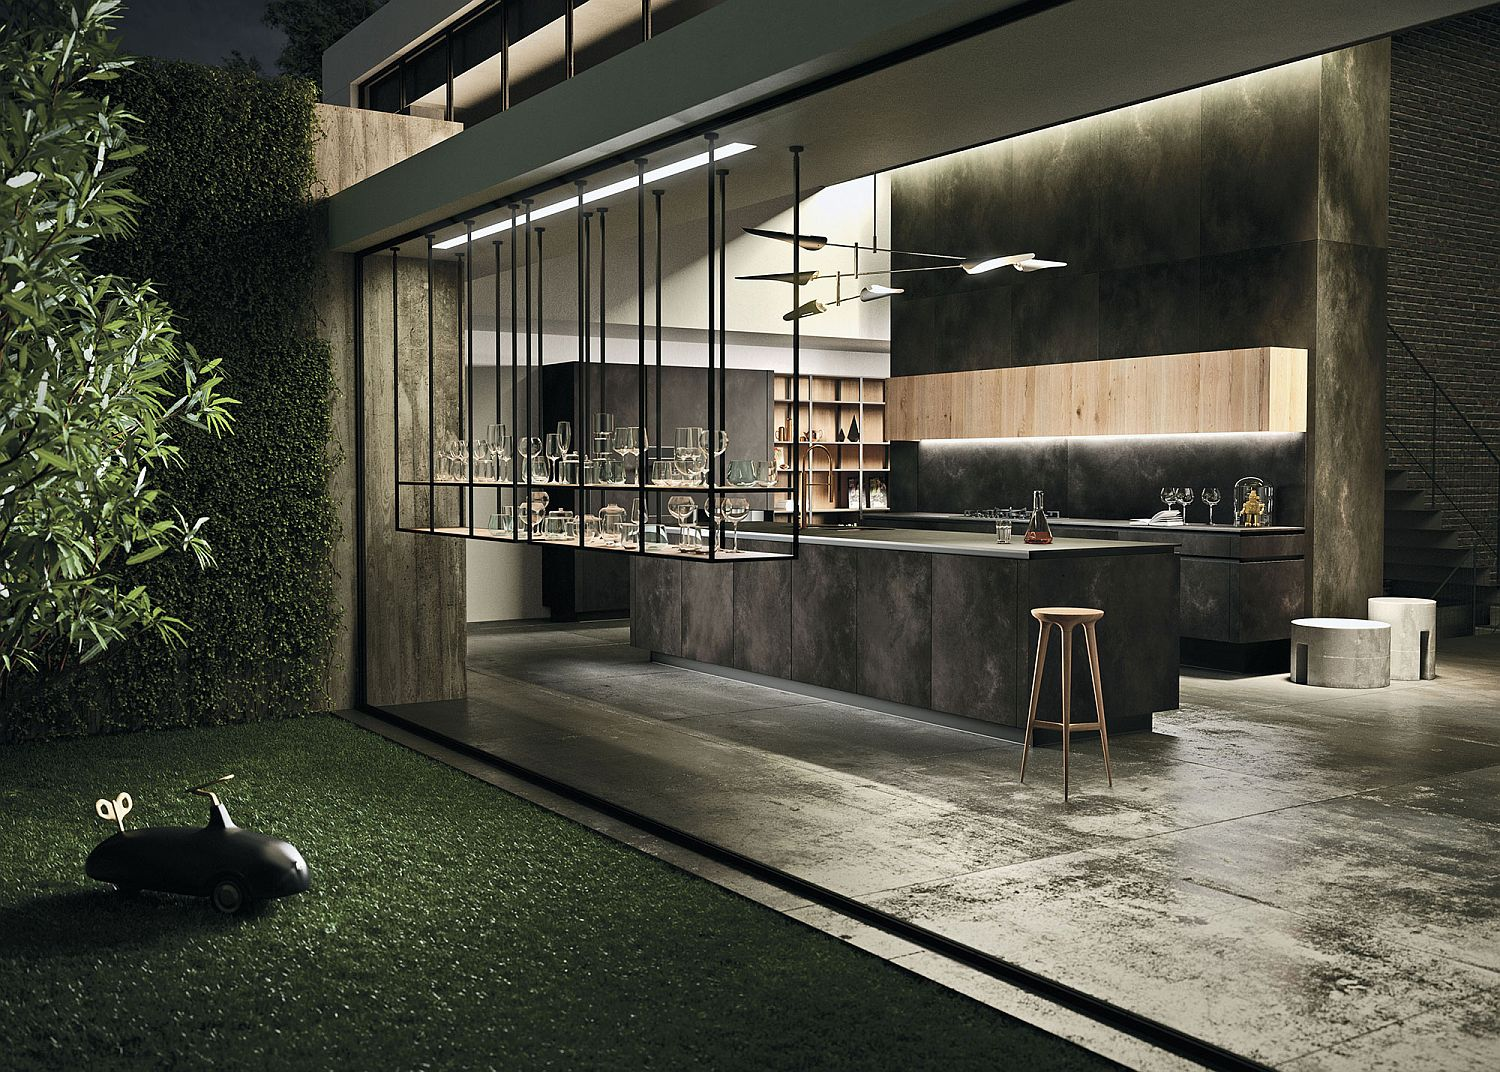 Well-defined proportions of the kitchen make it an aesthetic delight